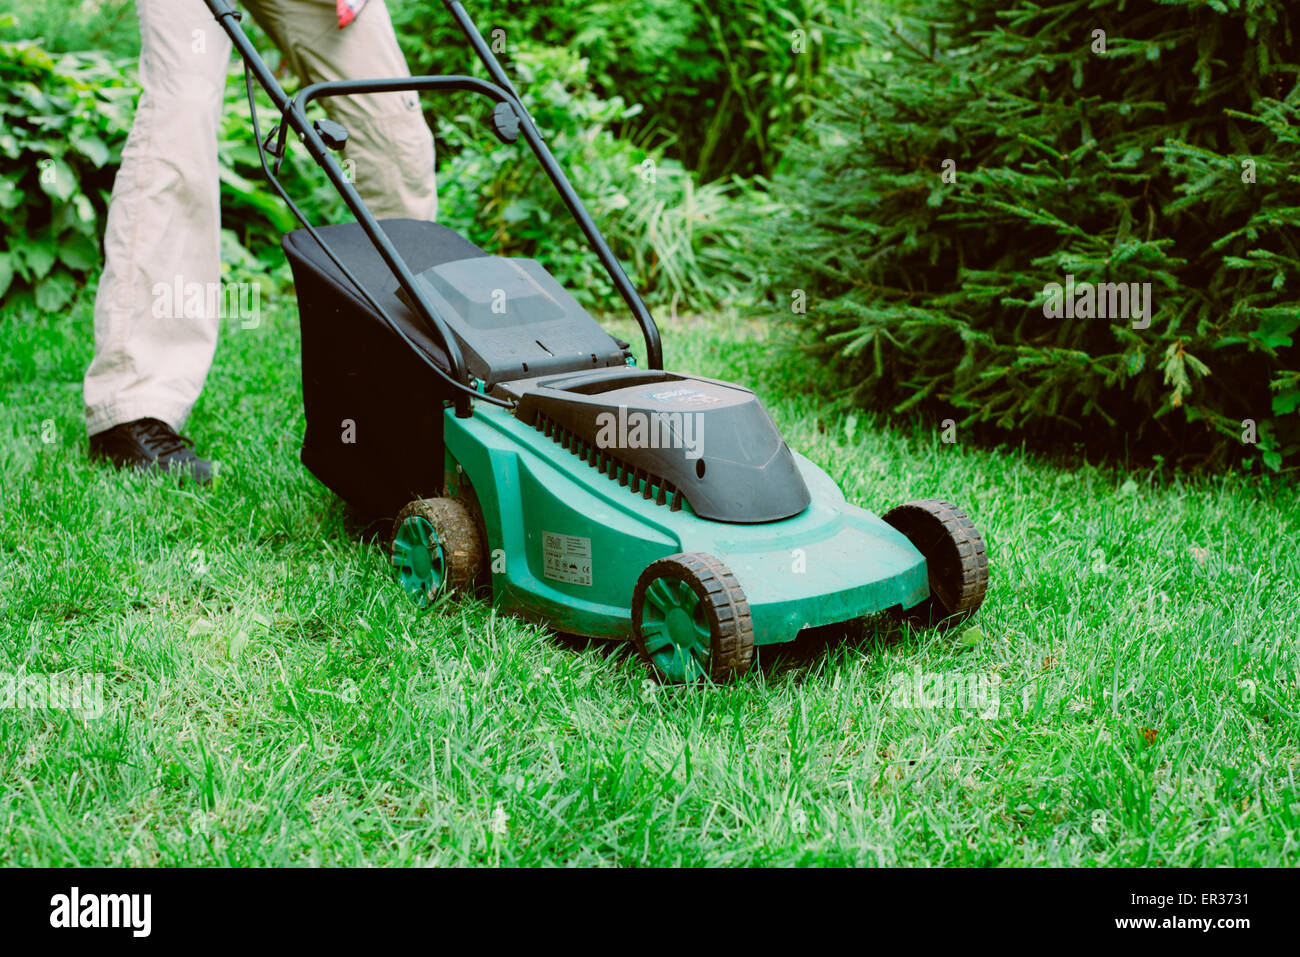 lawn mower - Stock Image